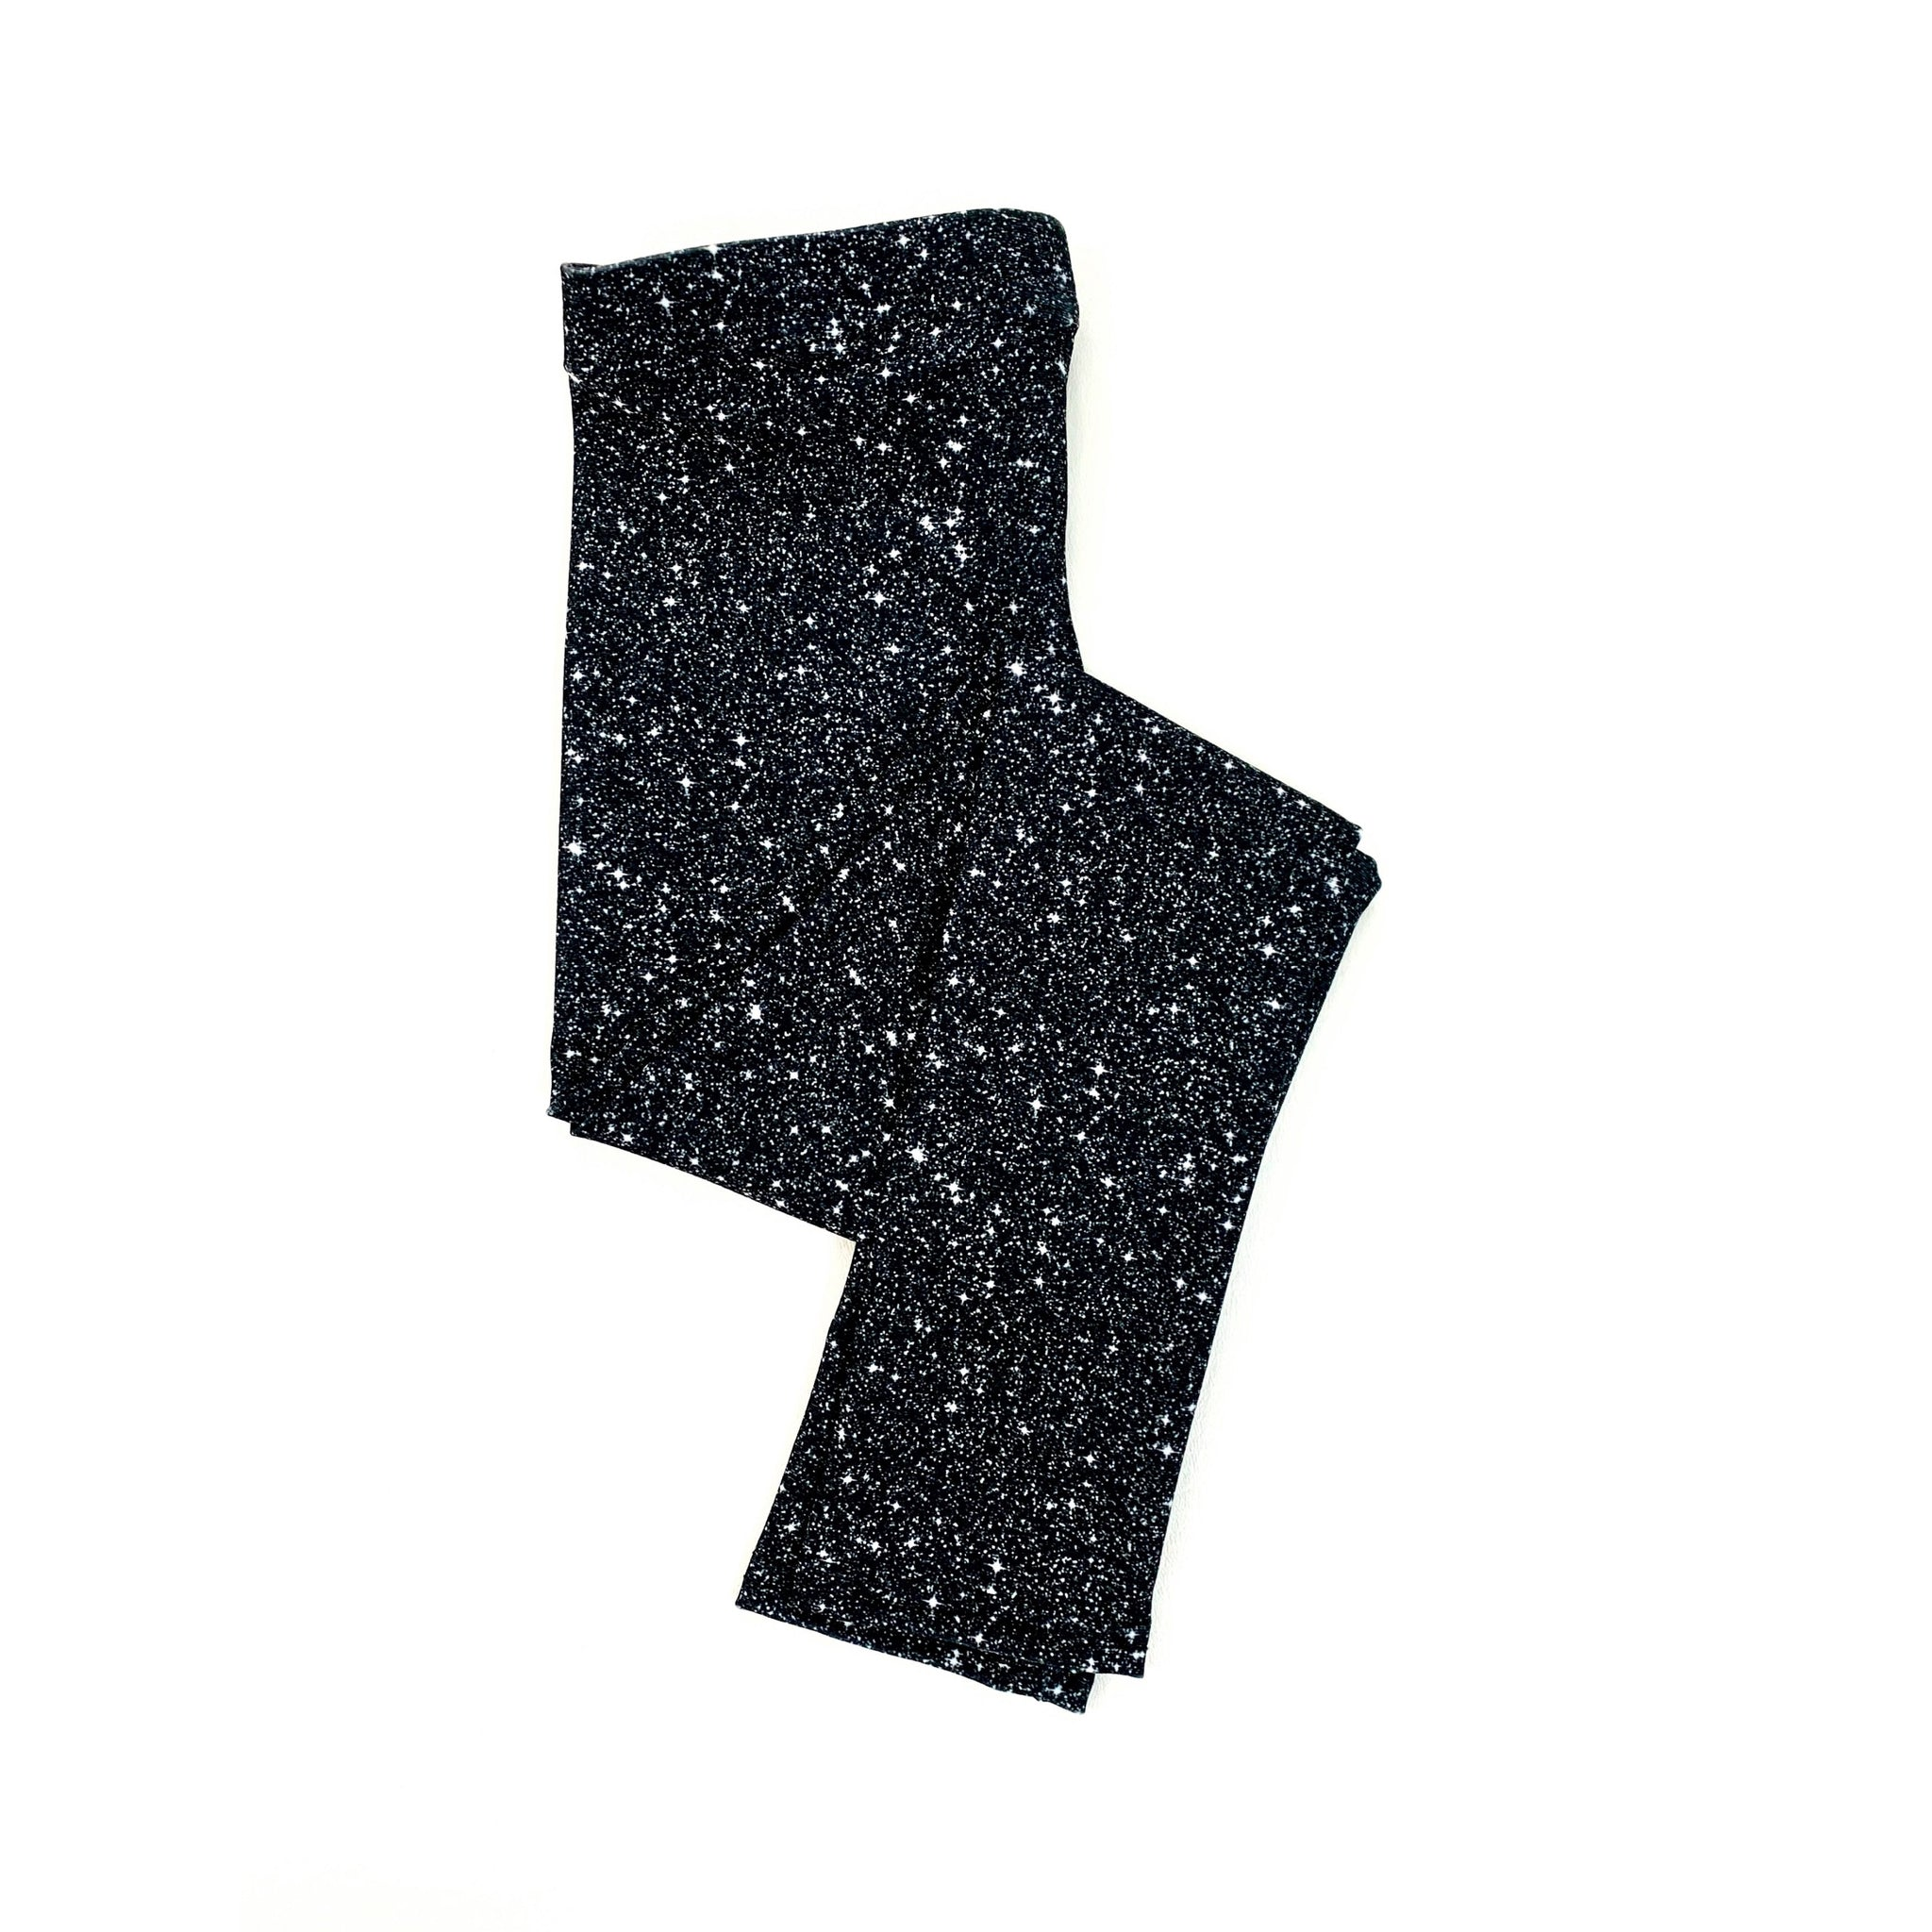 8b8e0782de2781 Black Sparkle Leggings (BABY + YOUTH) - Sun-Kissed & Sandy